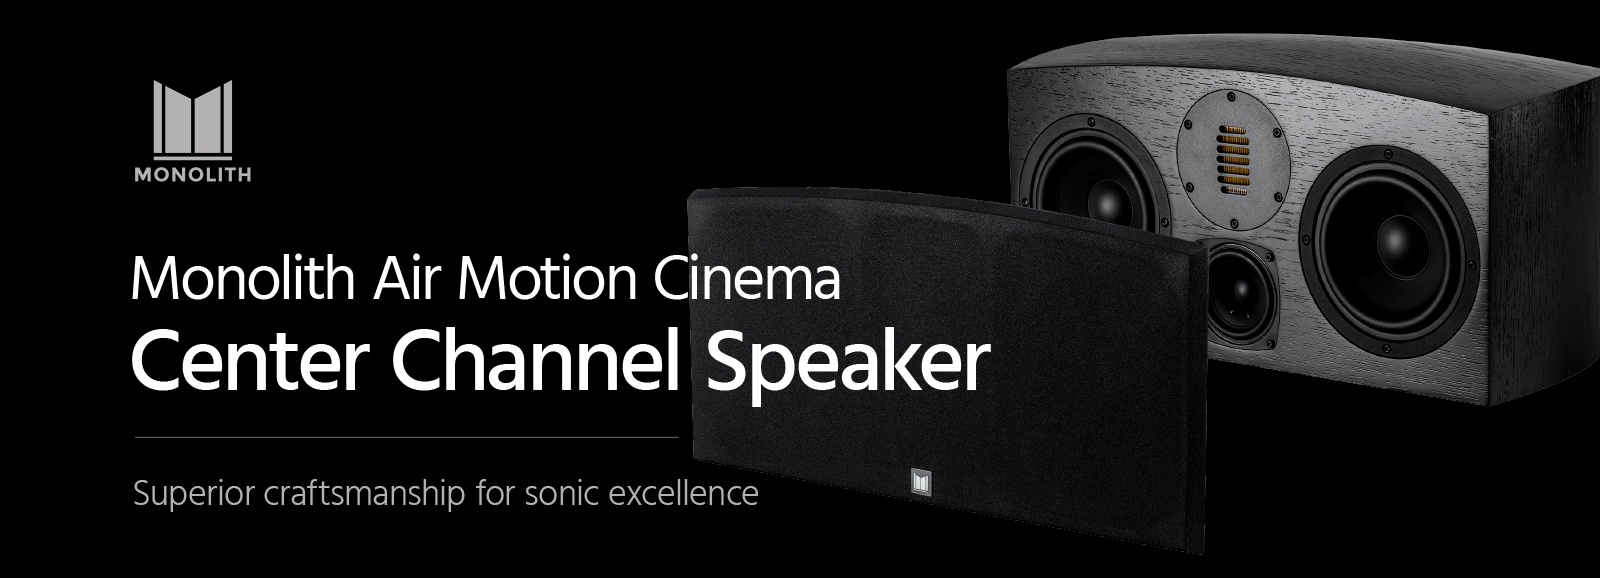 Monolith Center Channel Speaker